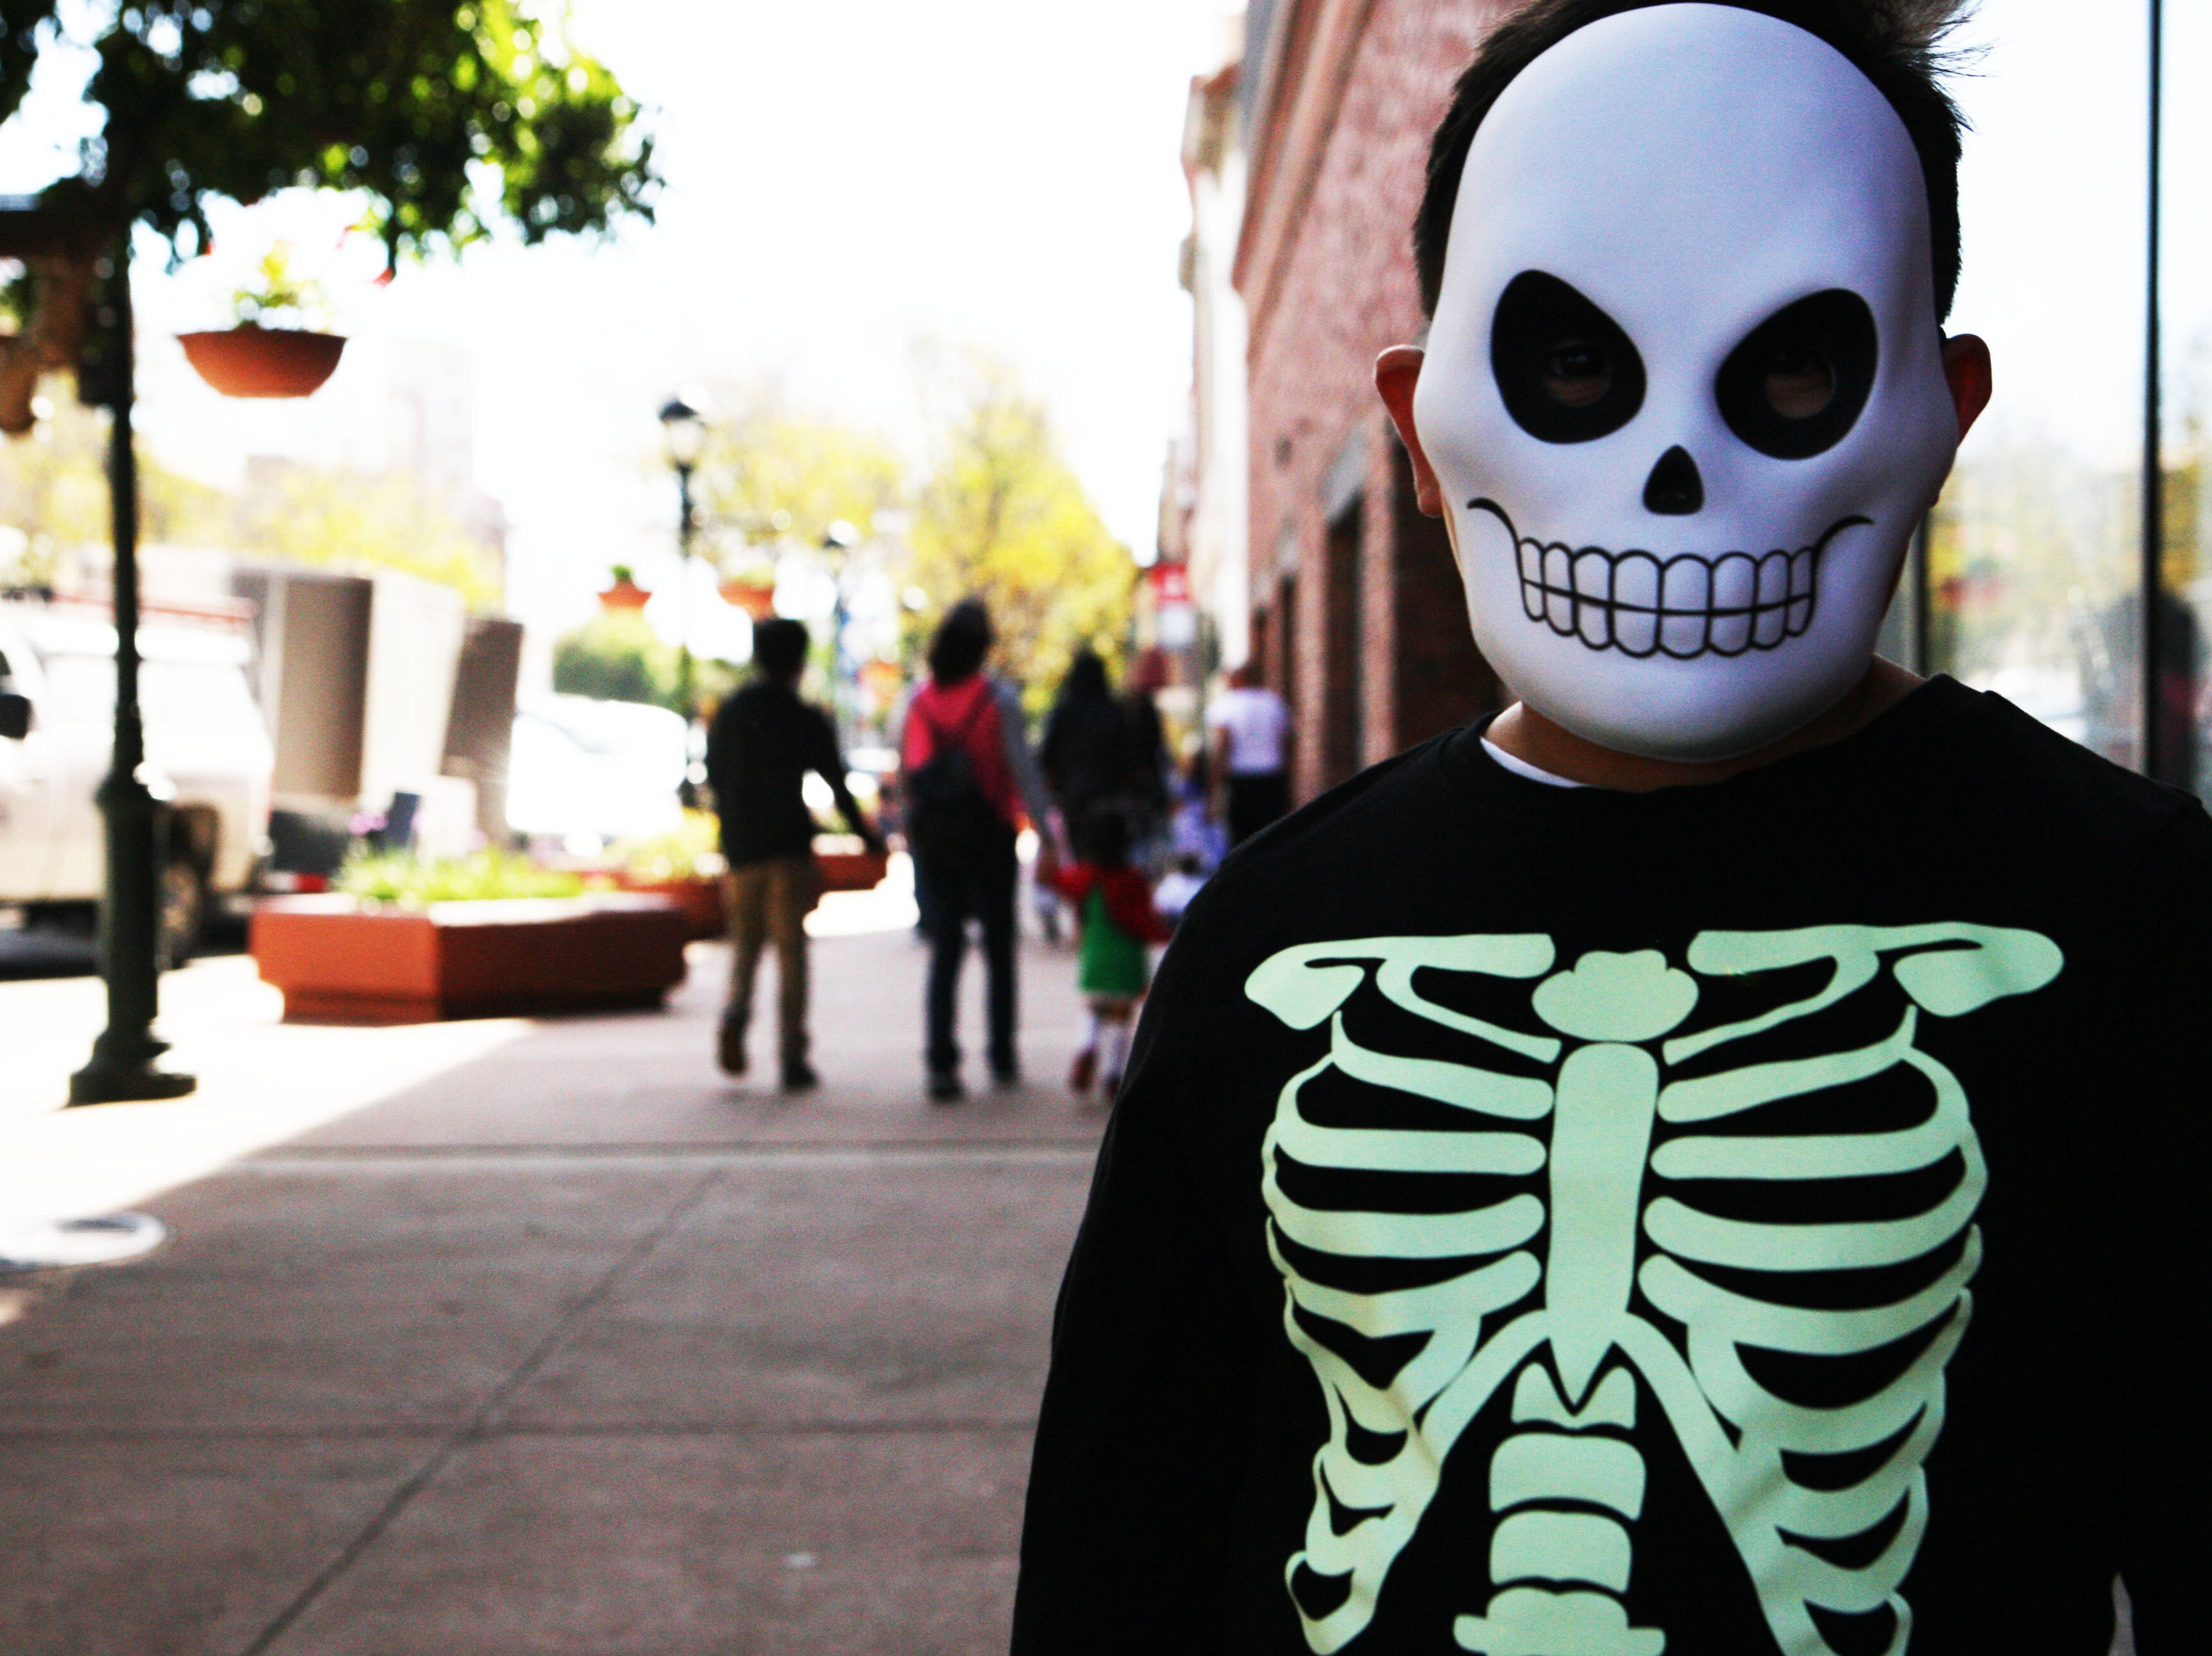 Jacob Torres, 8, poses for a photo after going trick-or-treating through Oldtown Saturday with his family, Emma Garcia, and Raymond Garcia. His favorite candy is a Twix bar, he says.